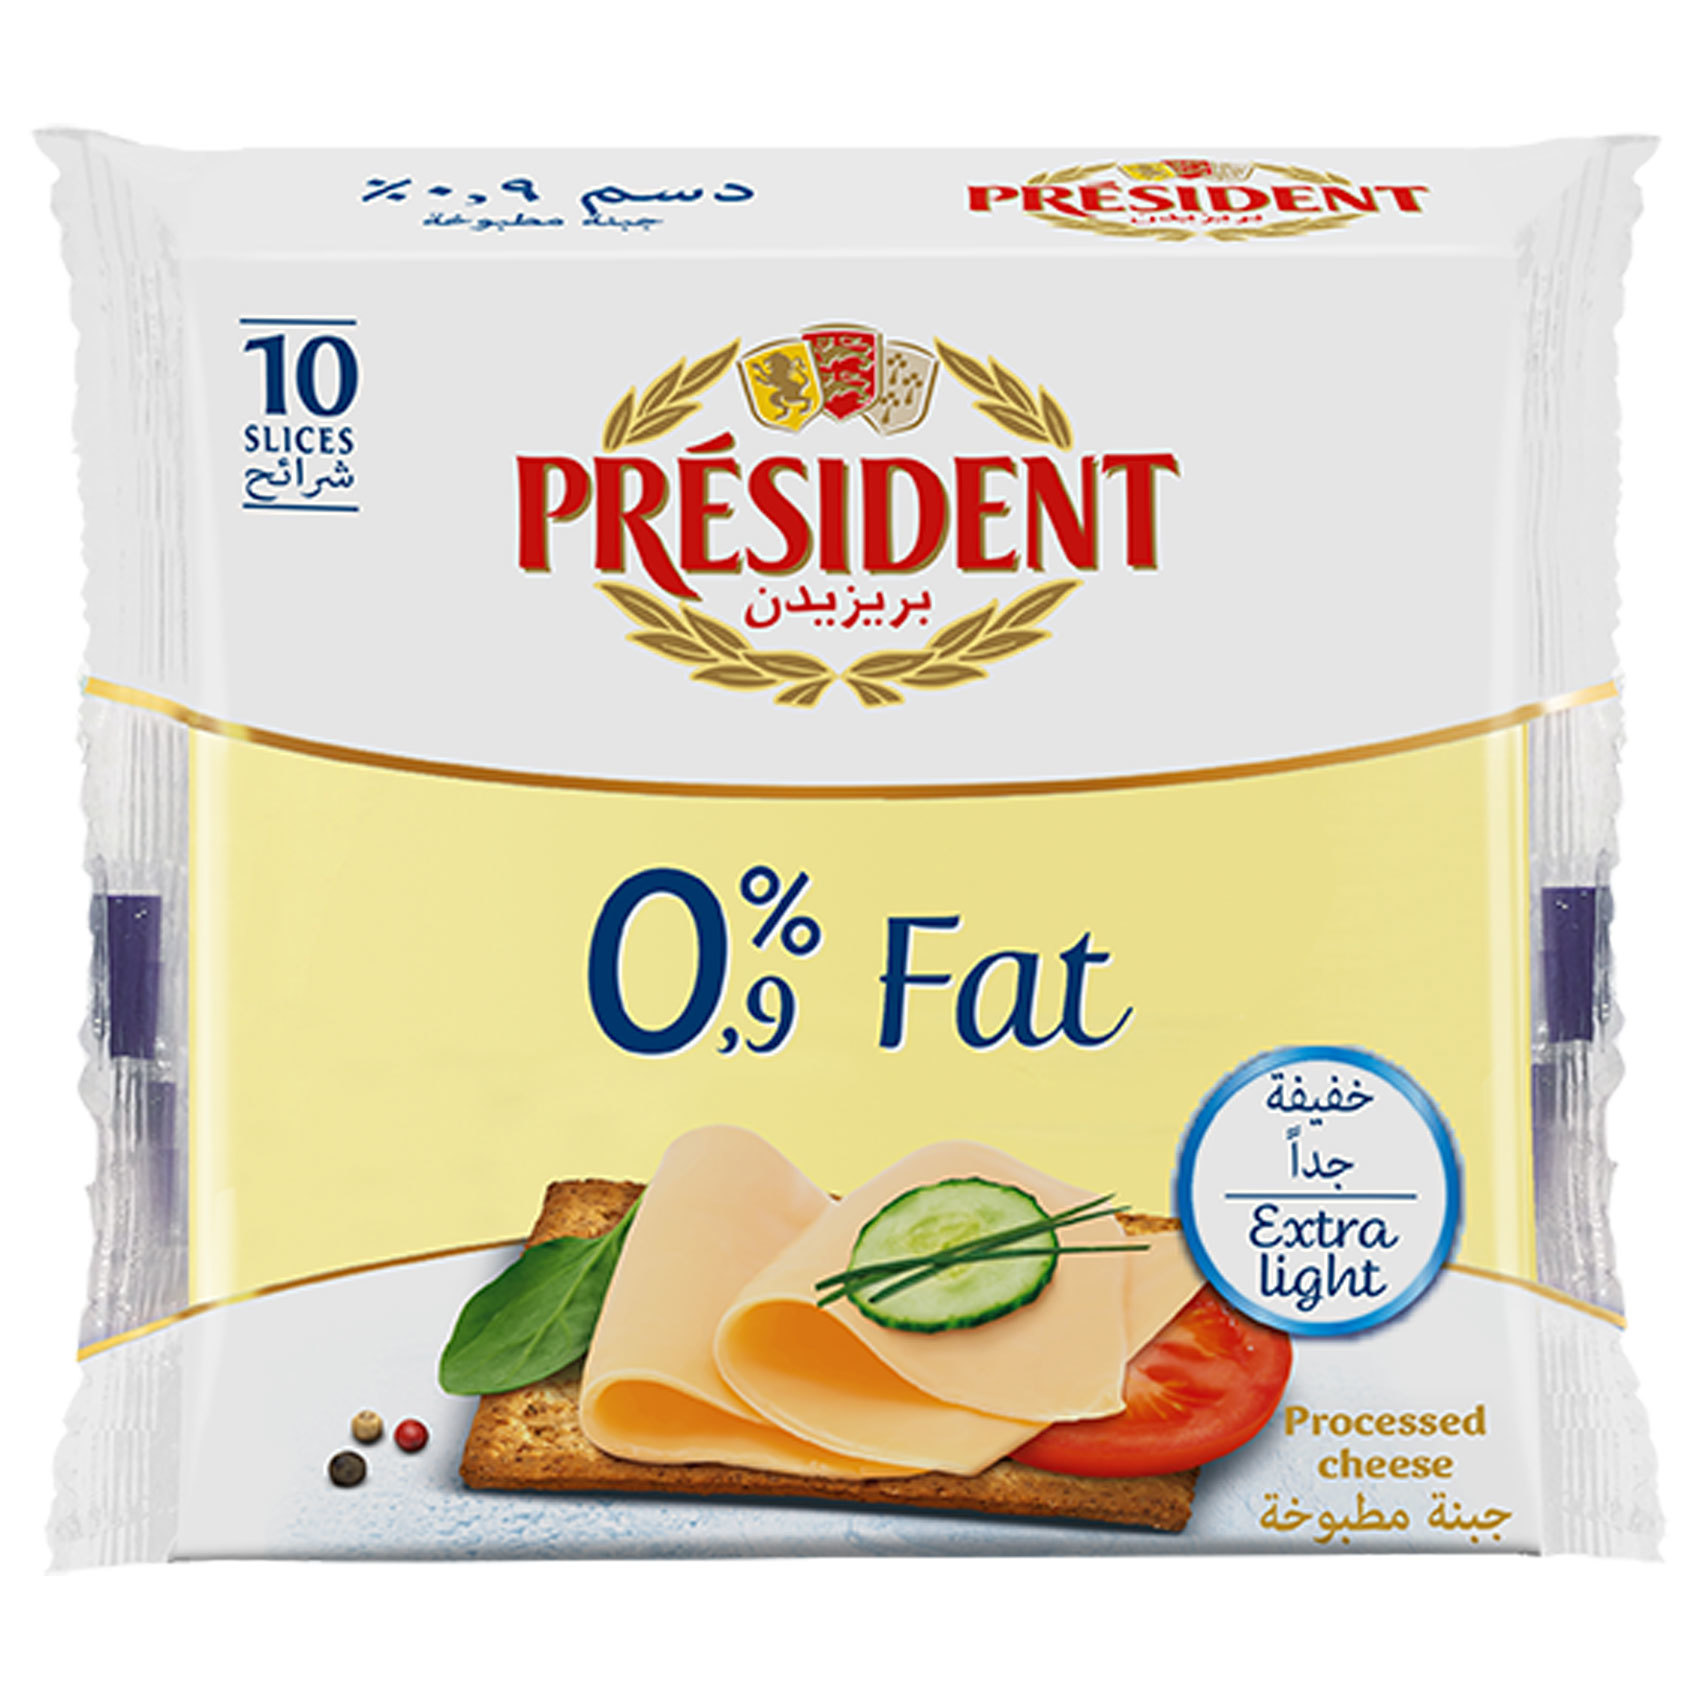 PRESIDENT SLICES 0% FAT 200GM